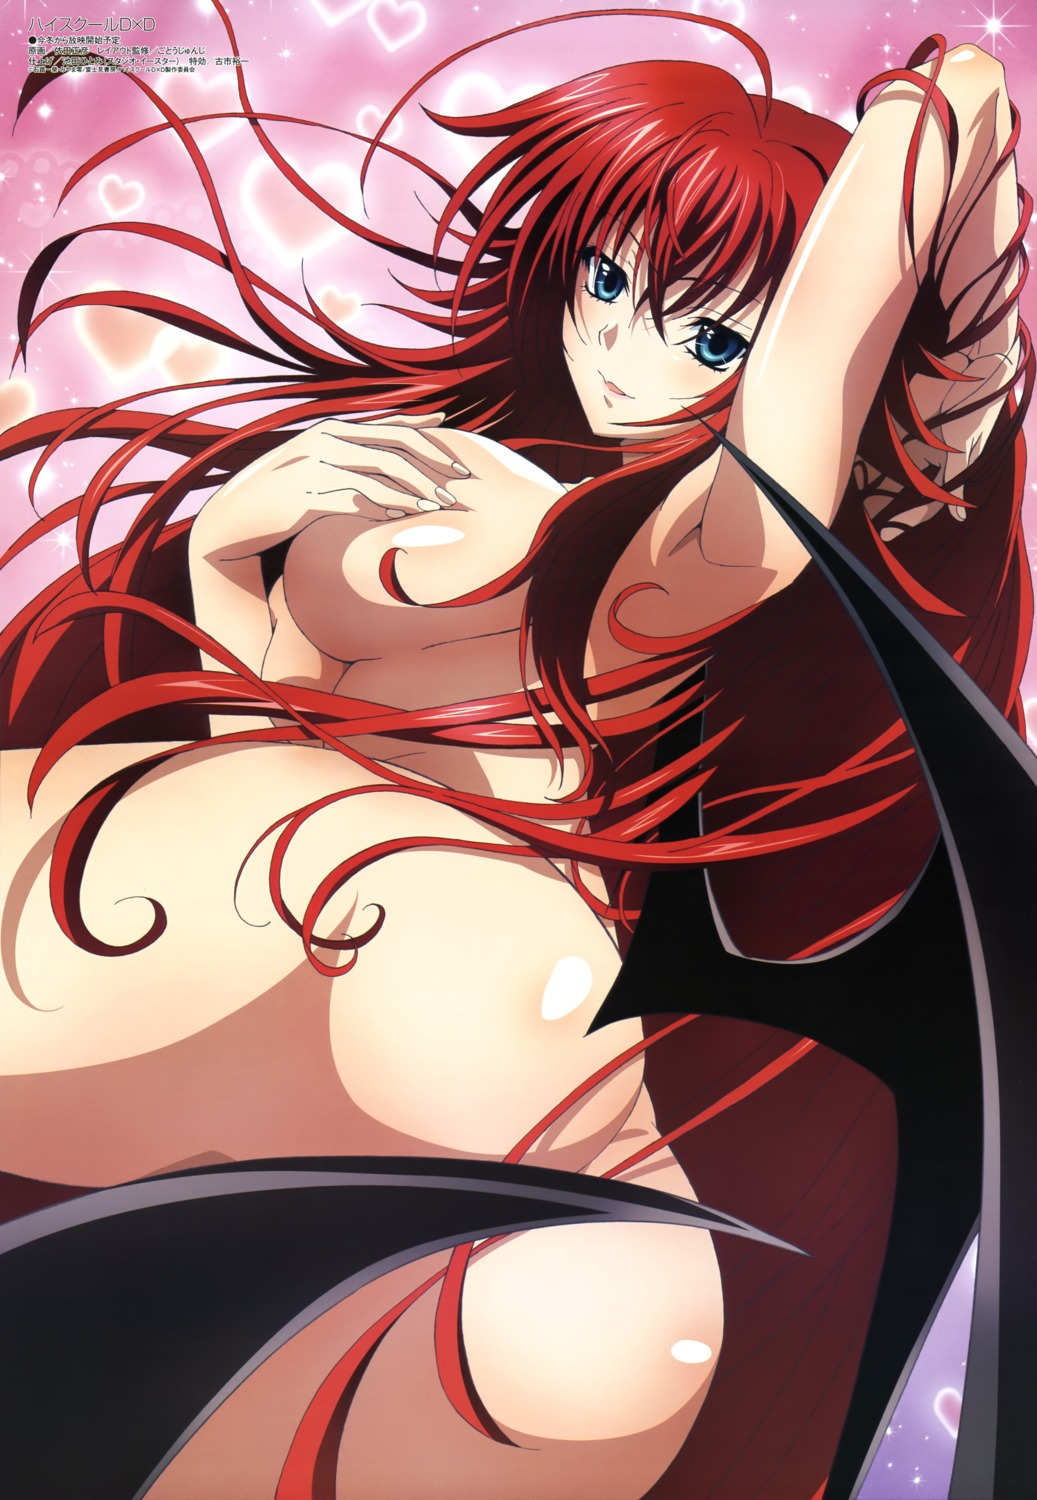 ass breast_hold devil highschool_dxd naked rias_gremory wings yoda_masahiko